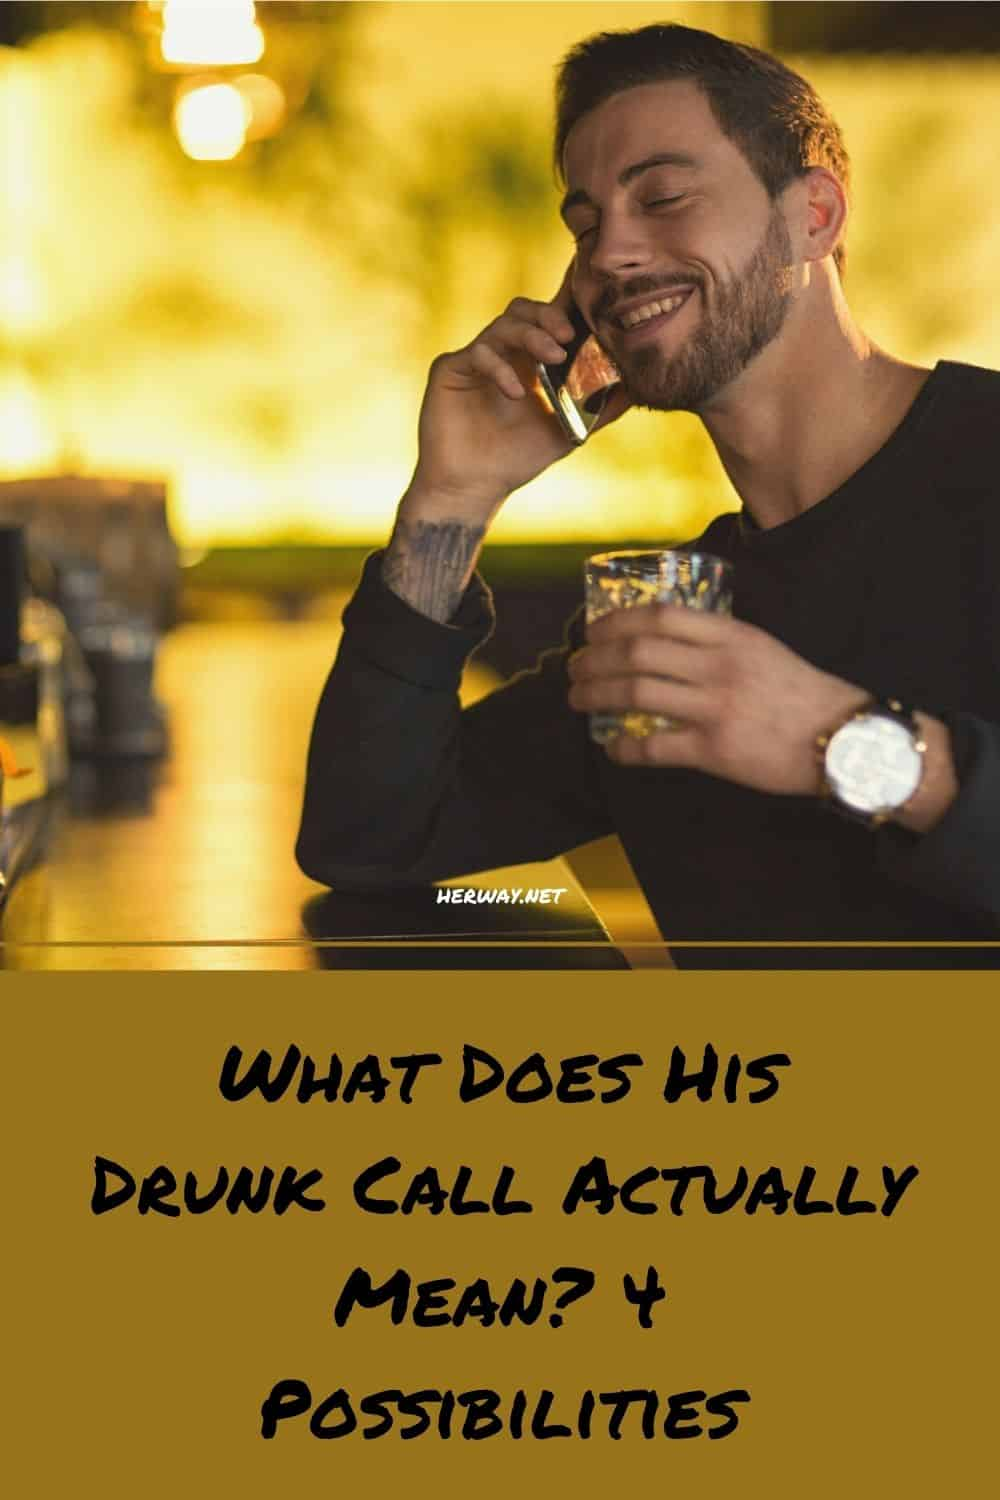 What Does His Drunk Call Actually Mean 4 Possibilities